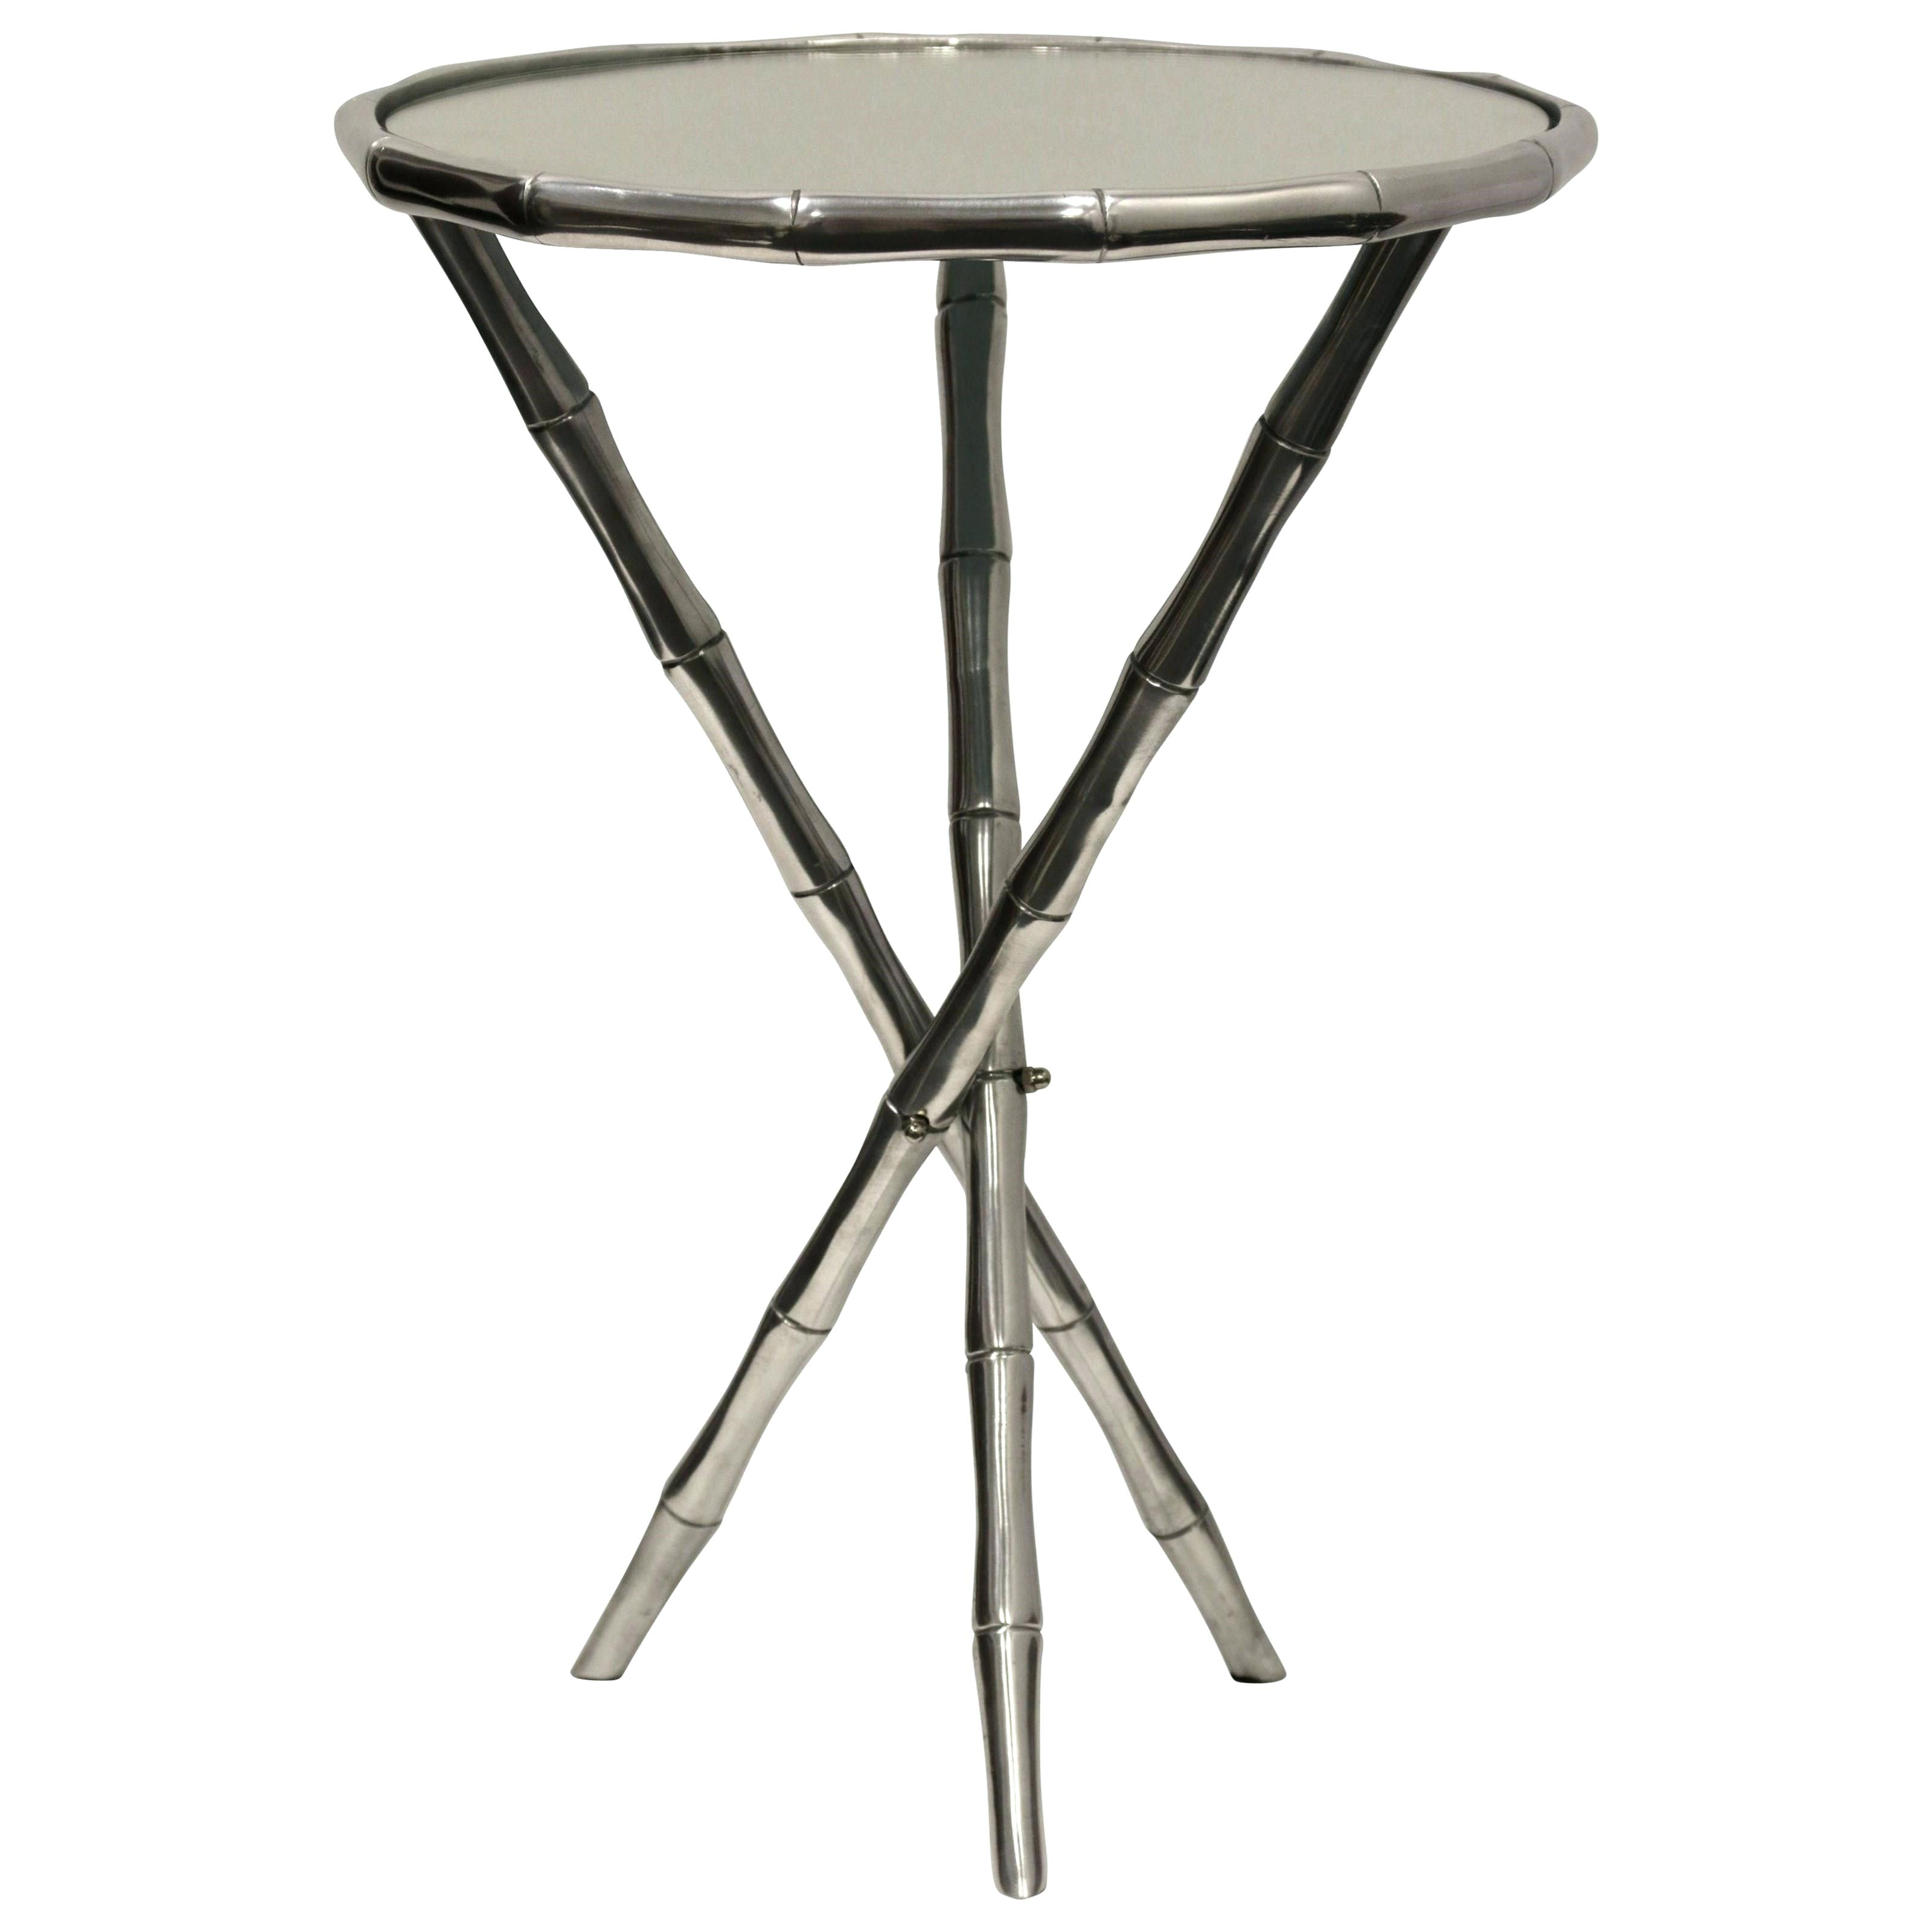 metal accent table with glass top white outdoor rounde end corranade drum target threshold occasional tables round furniture kitchen marvellous roun full size ikea file box mcm